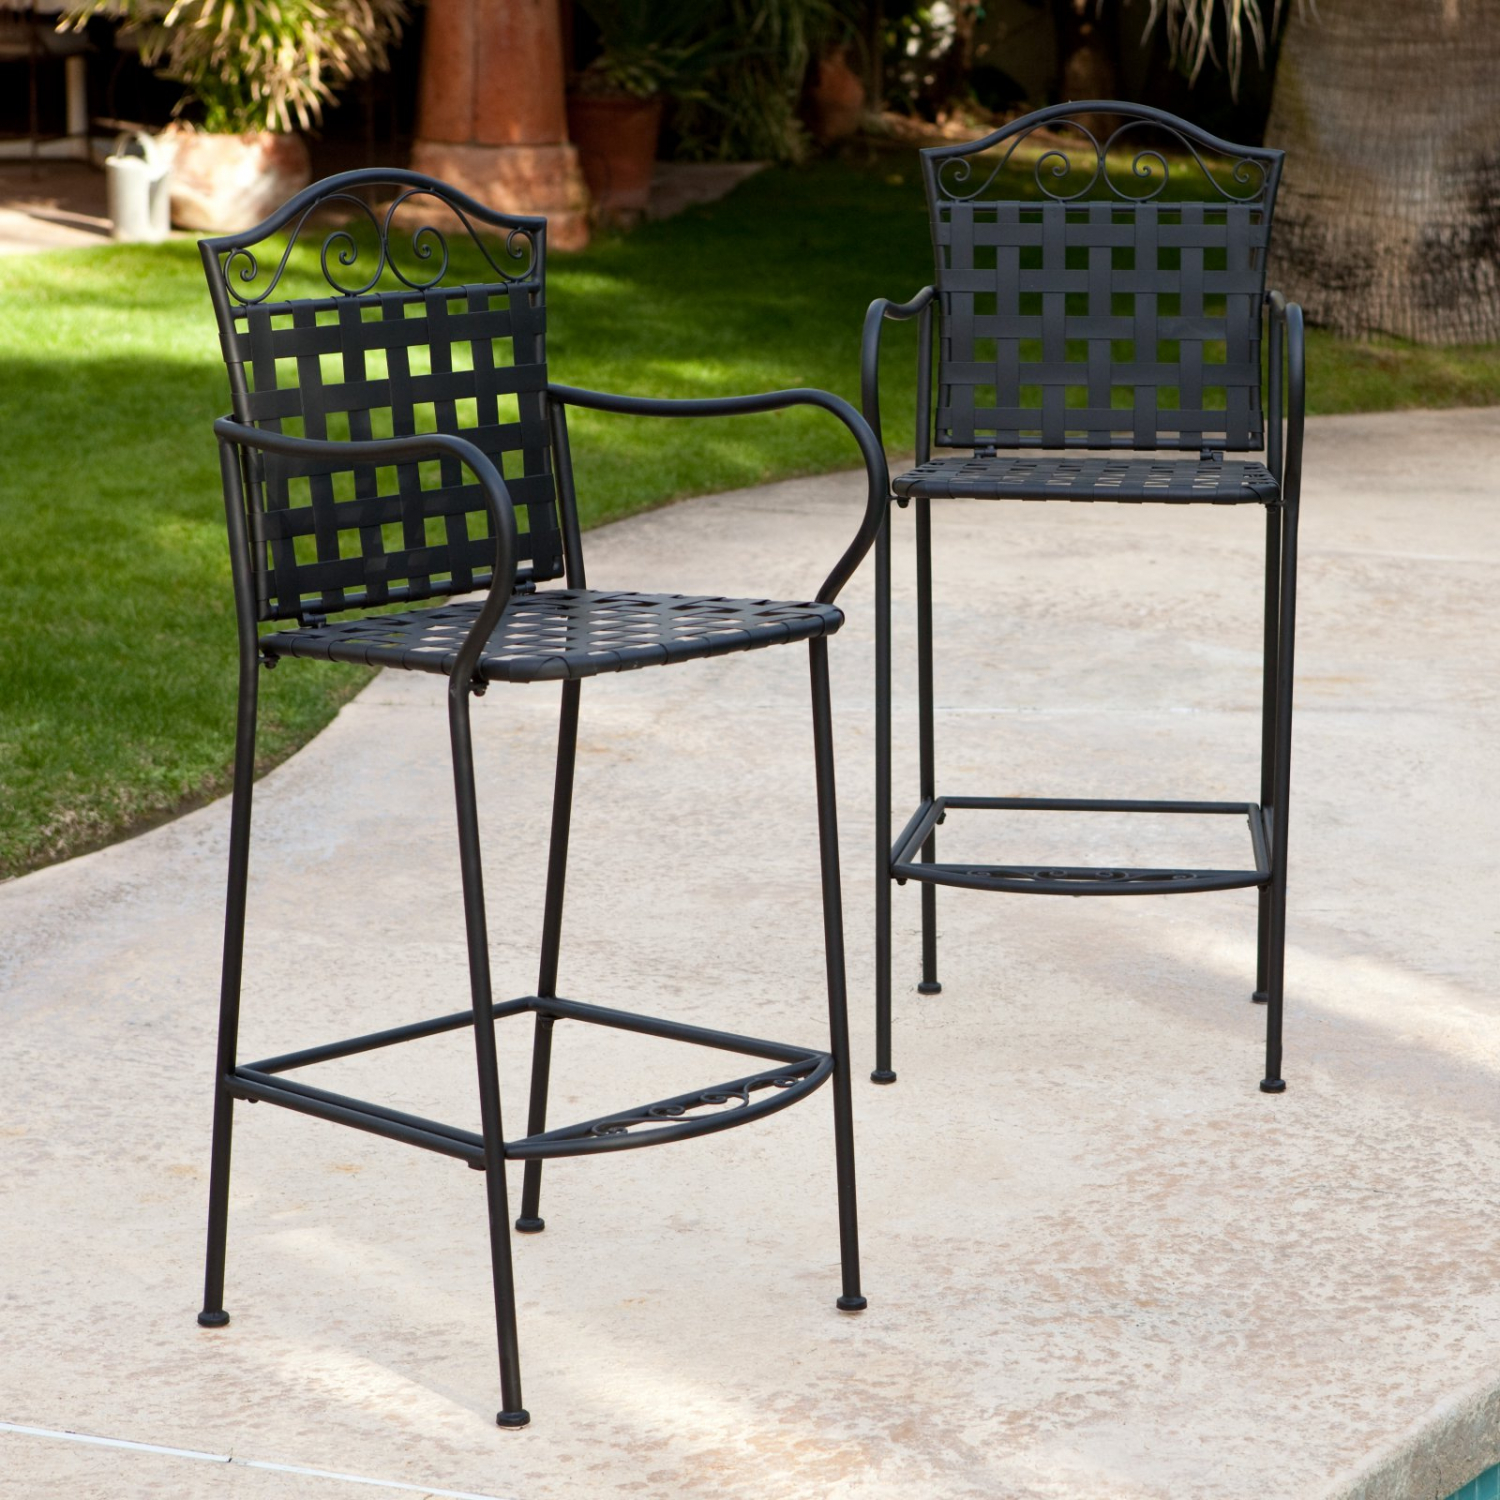 Details About Outdoor Bar Stool Wrought Iron All Weather Patio Pool Chair Furniture Set Of 2